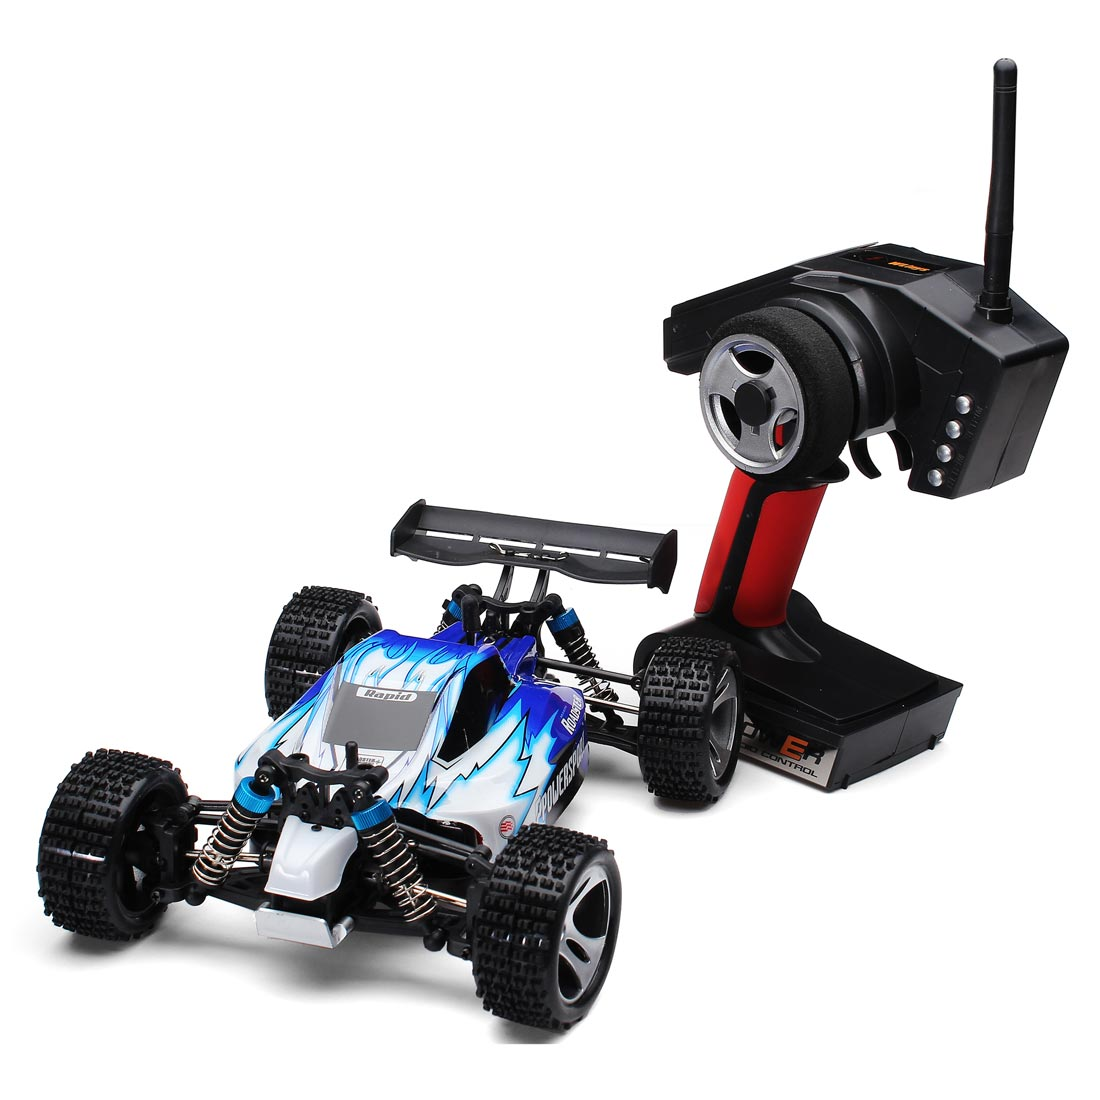 50Km/H  1/18  High Quality Wltoys A959 Rc Car 2.4Gh 4WD Off-Road Buggy With Upgrade Metal Central Driving Shaft wltoys a202 1 24 electric 4wd off road buggy